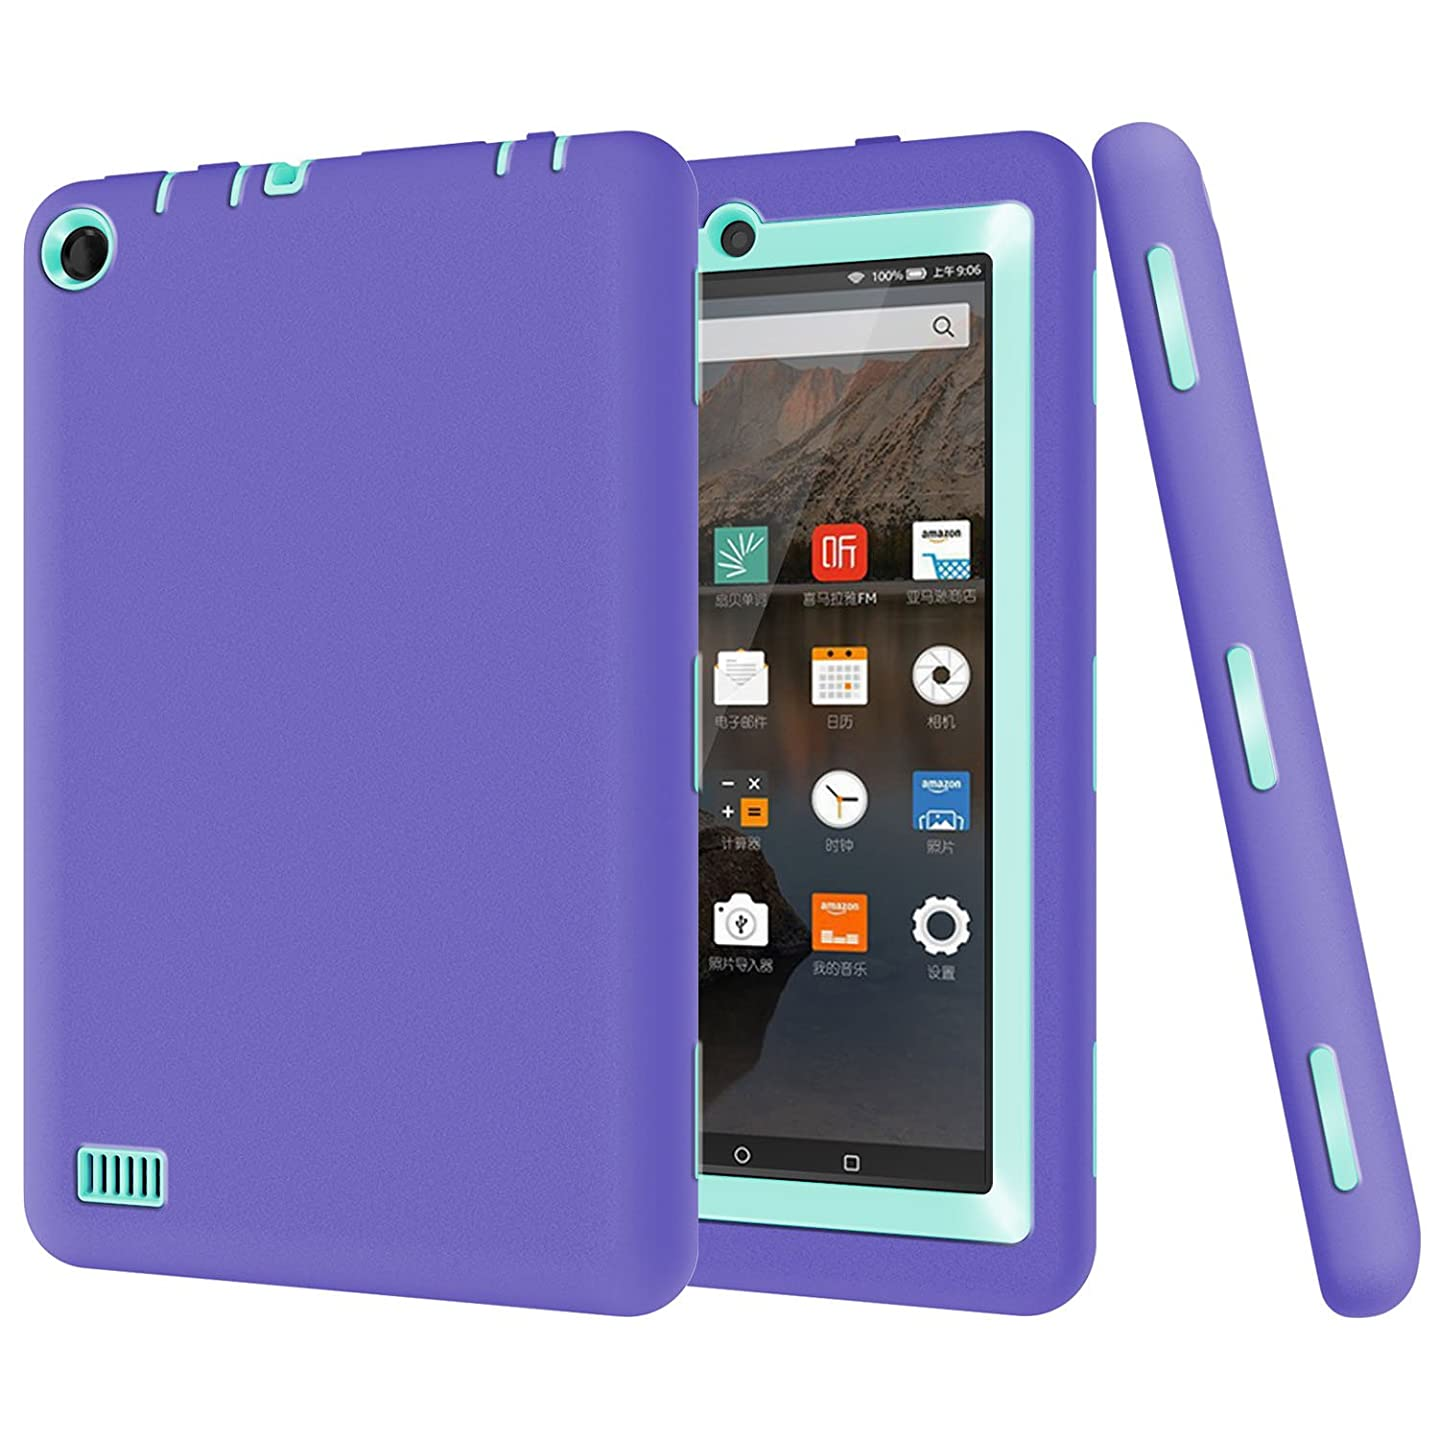 Amazon Fire 7.0 Case, Jeccy 3in1 Full-body Shock Proof Hybrid Heavy Duty Armor Defender Protective Case, Silicone Skin Hard Plastic Case for Amazon Fire 7.0 inch (5th Generation 2015 )